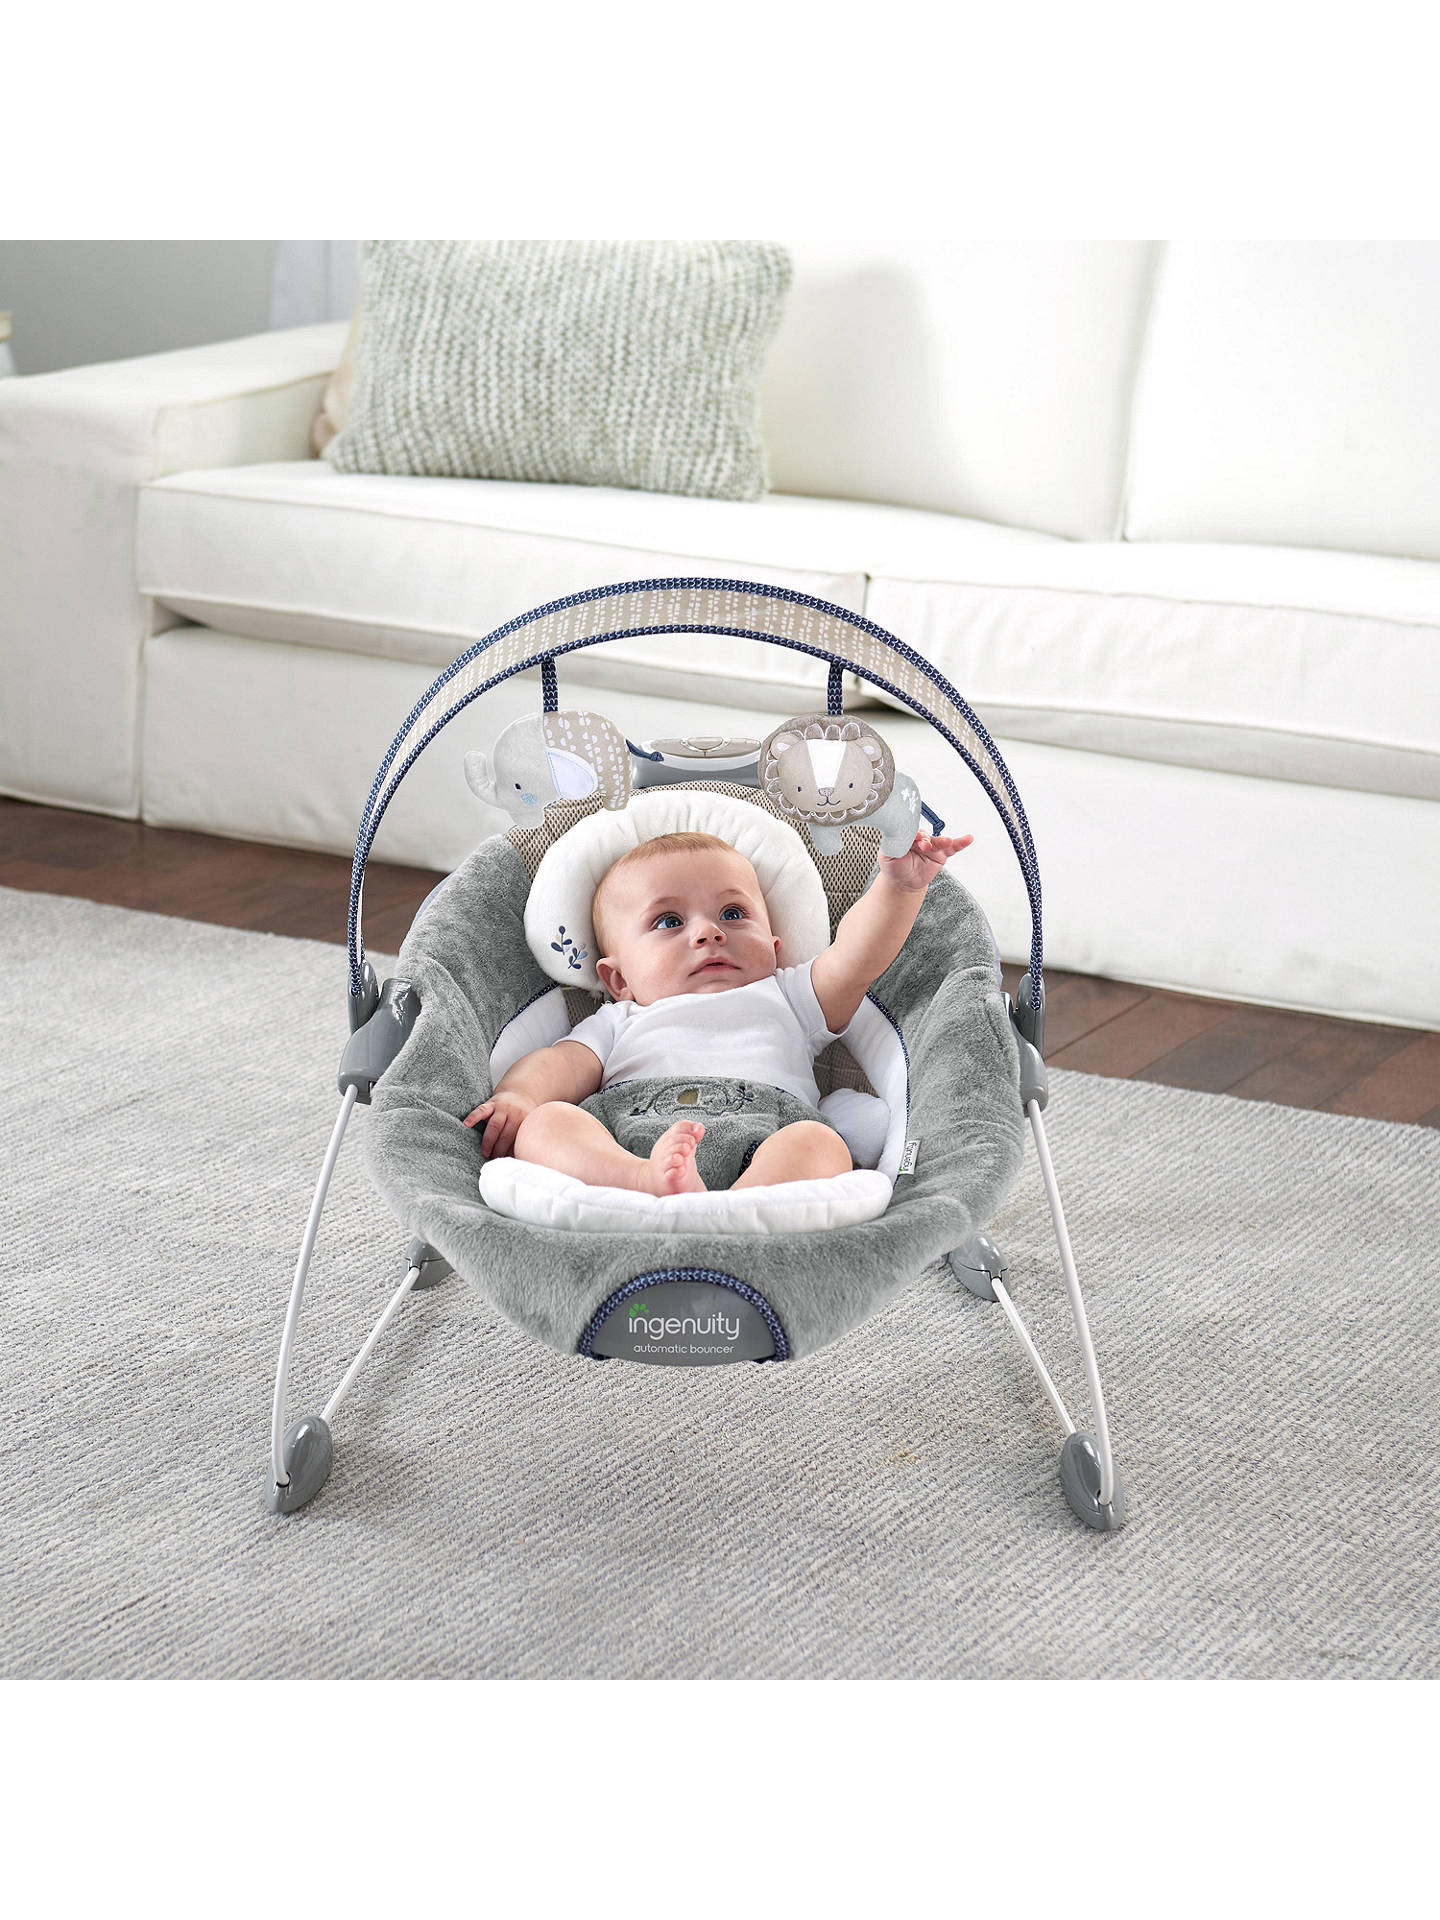 Ingenuity Smartbounce Townsend Bouncer At John Lewis Partners